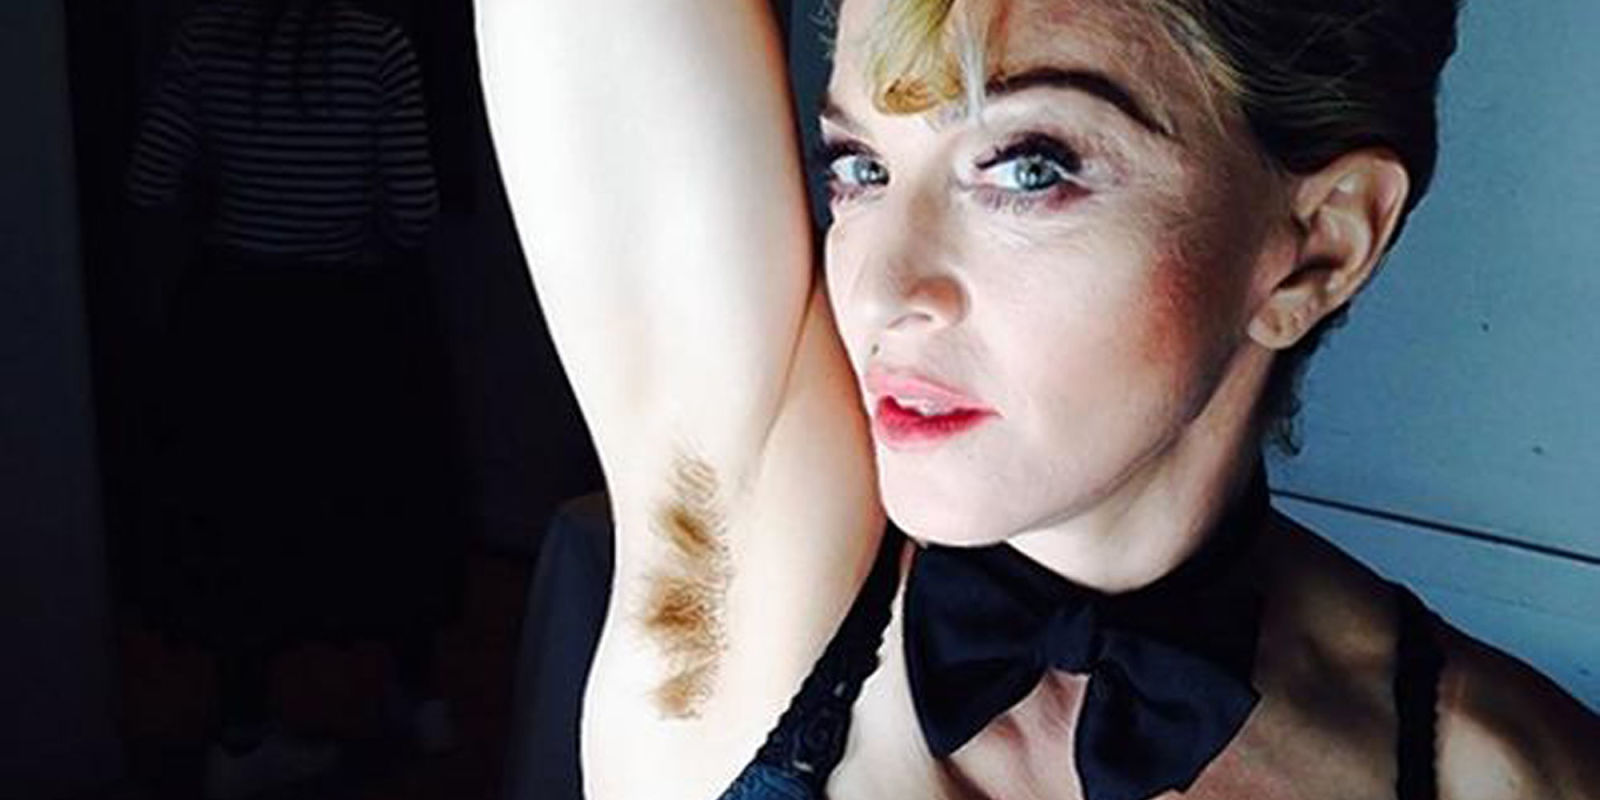 Intelligence Body Hair Know About Body Hair